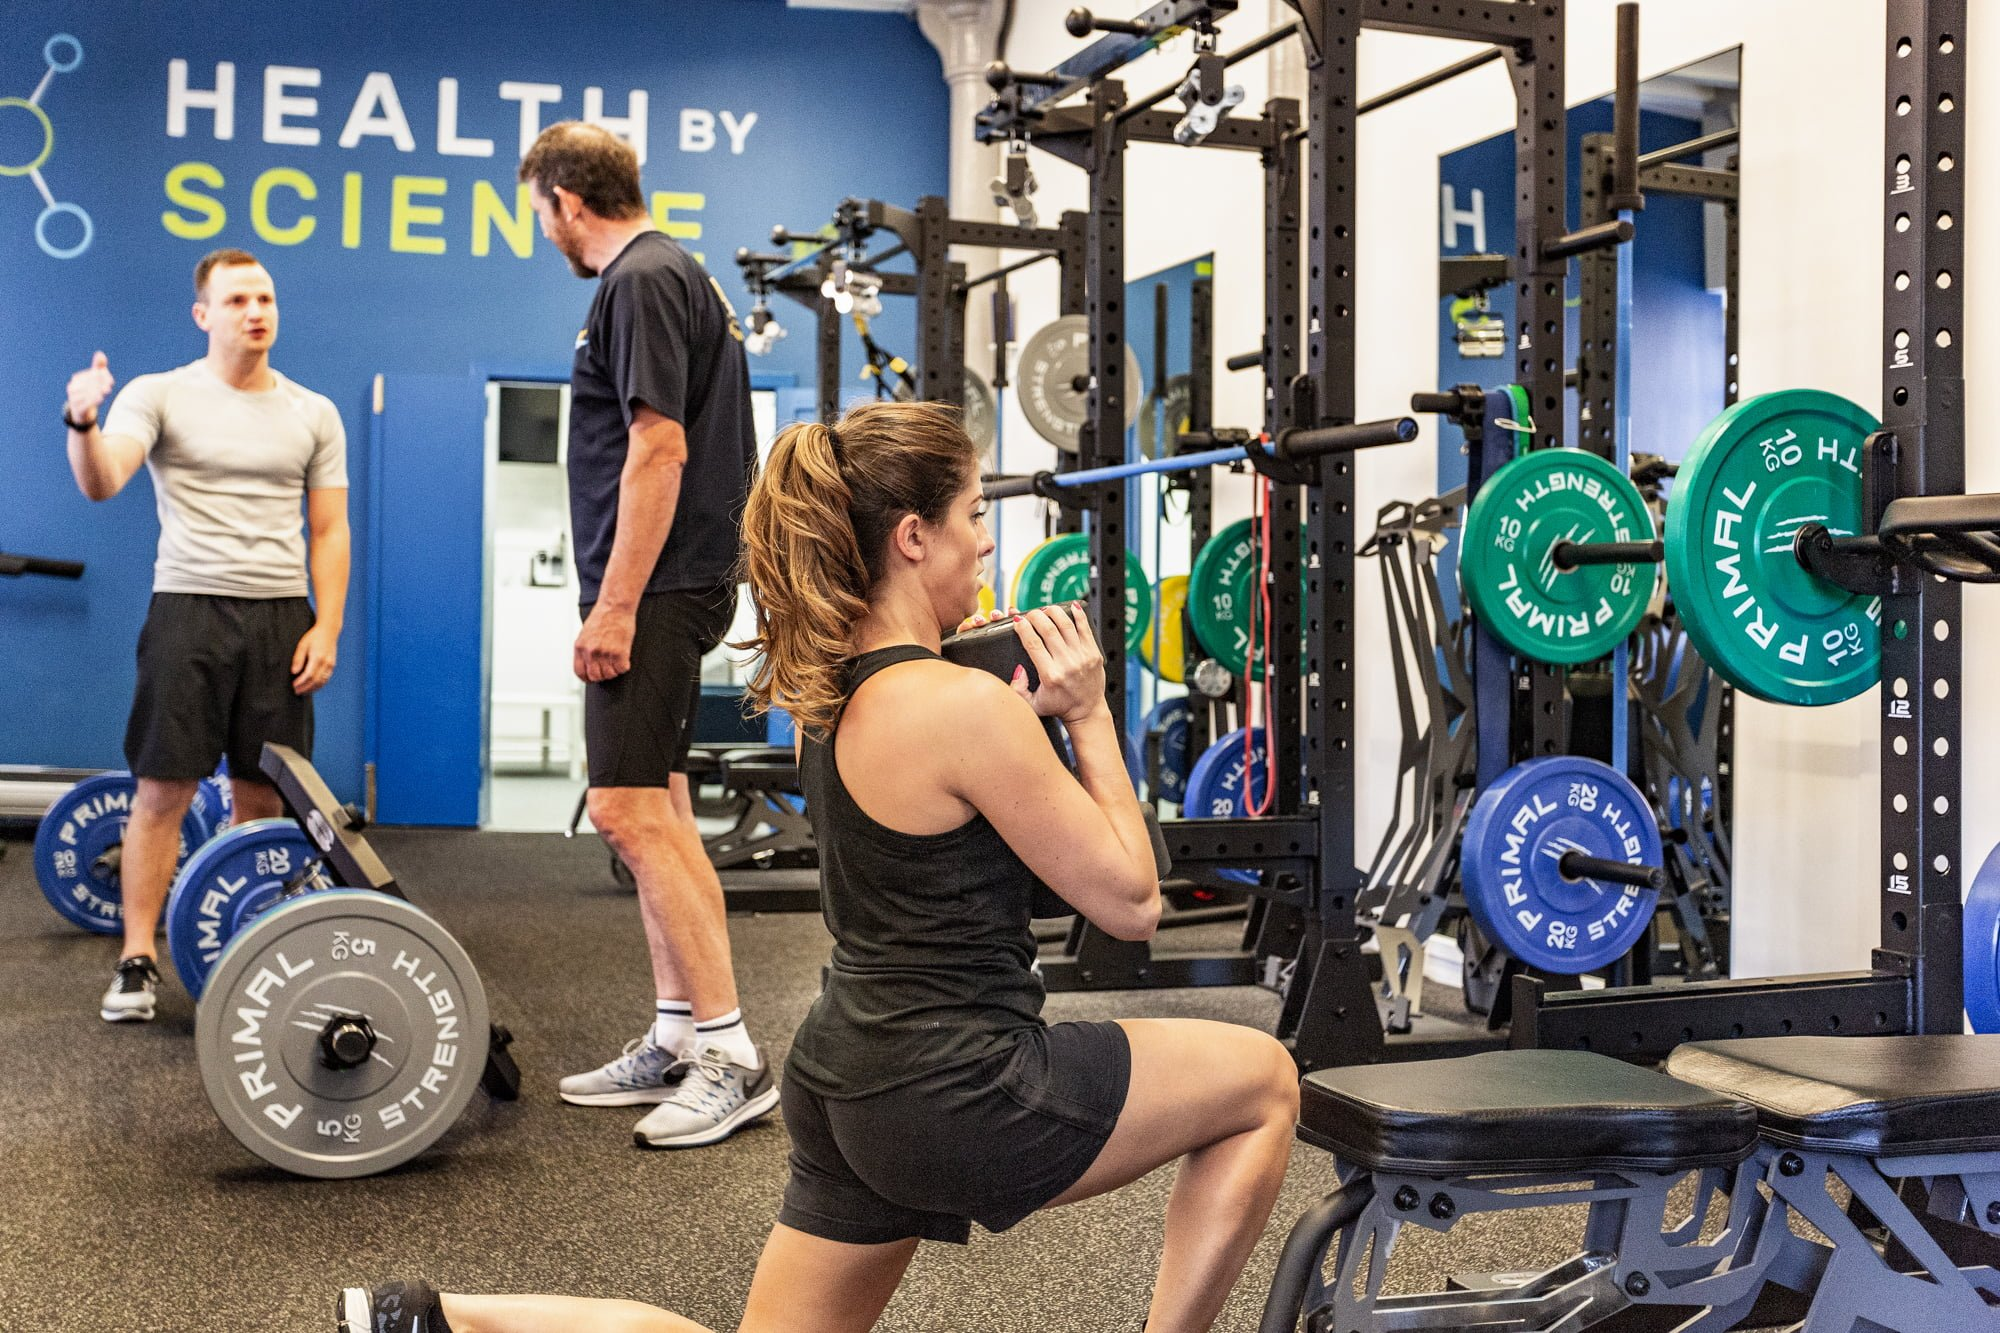 an image of personal training clients training.